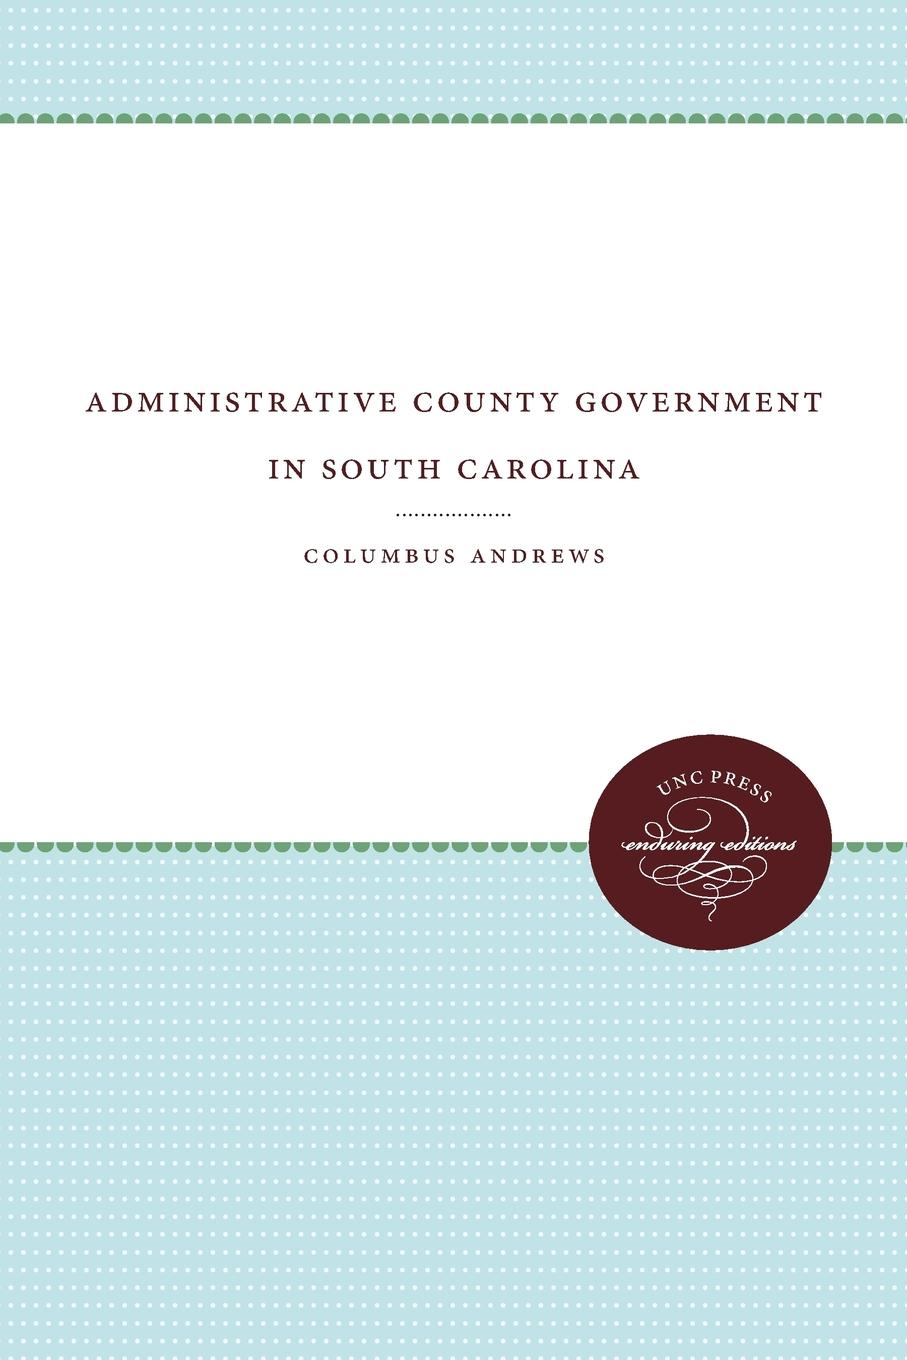 Columbus Andrews Administrative County Government in South Carolina john a parducci six decades of making wine in mendocino county california